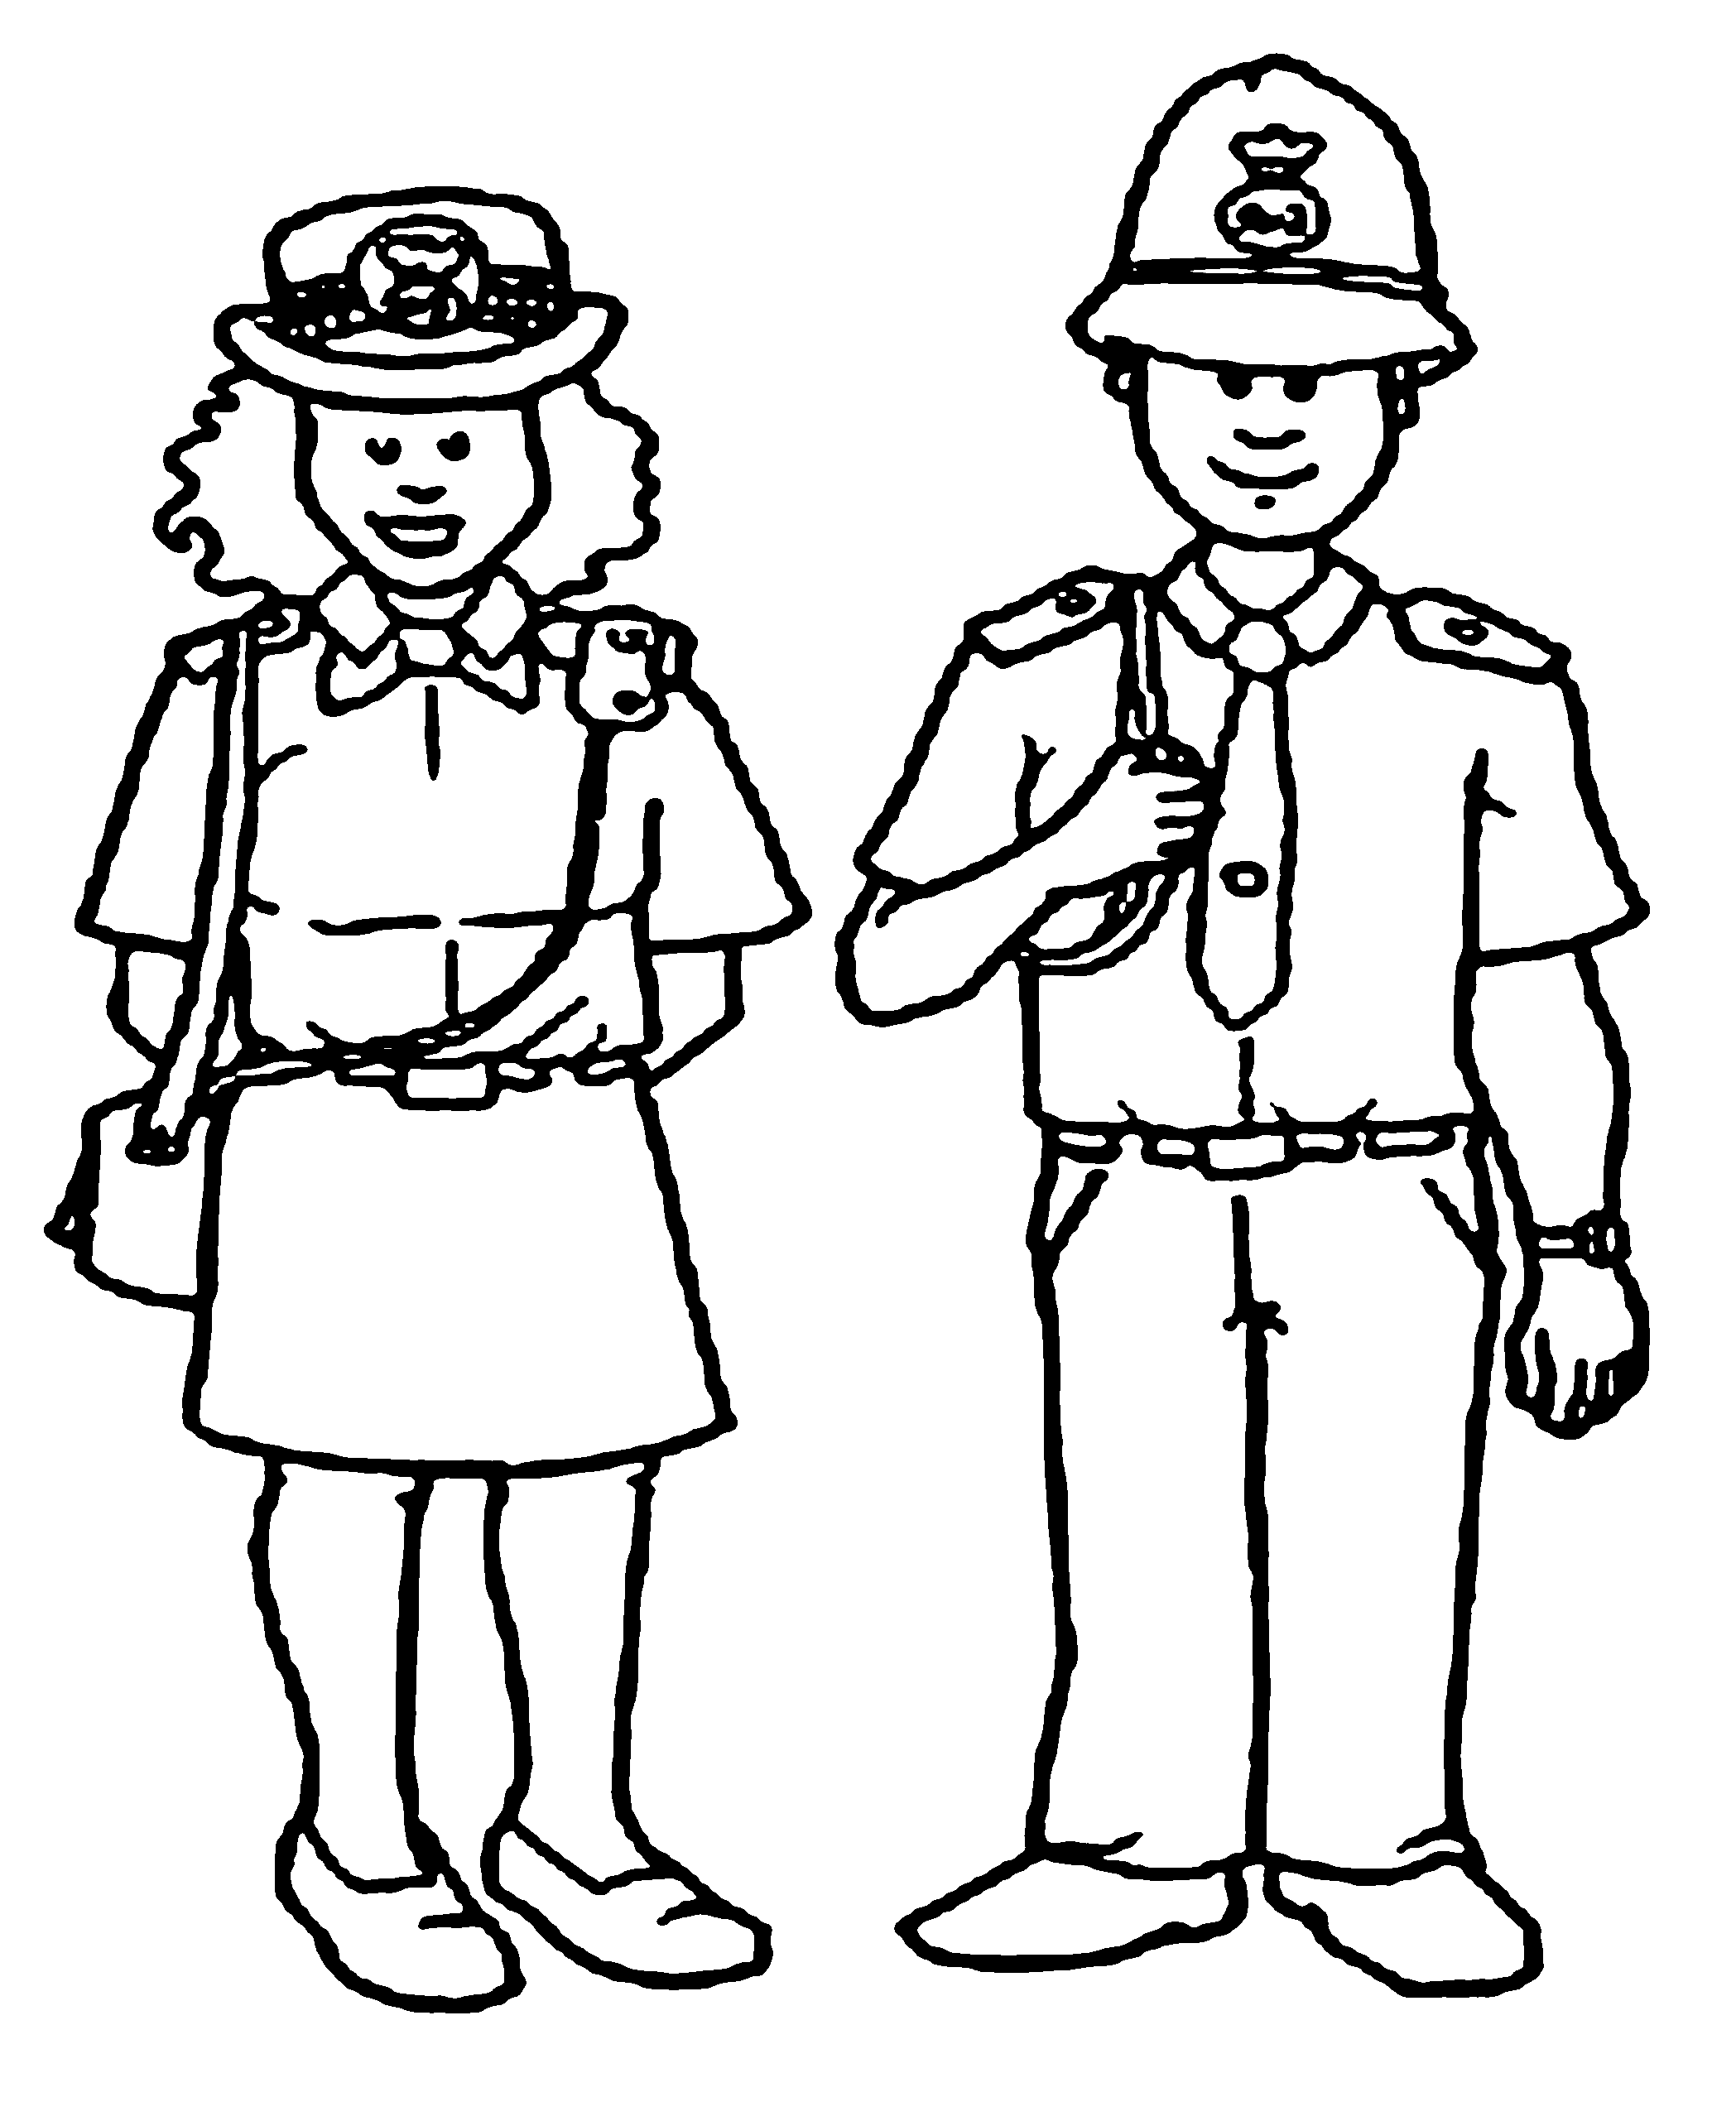 Police Uniform Coloring Pages